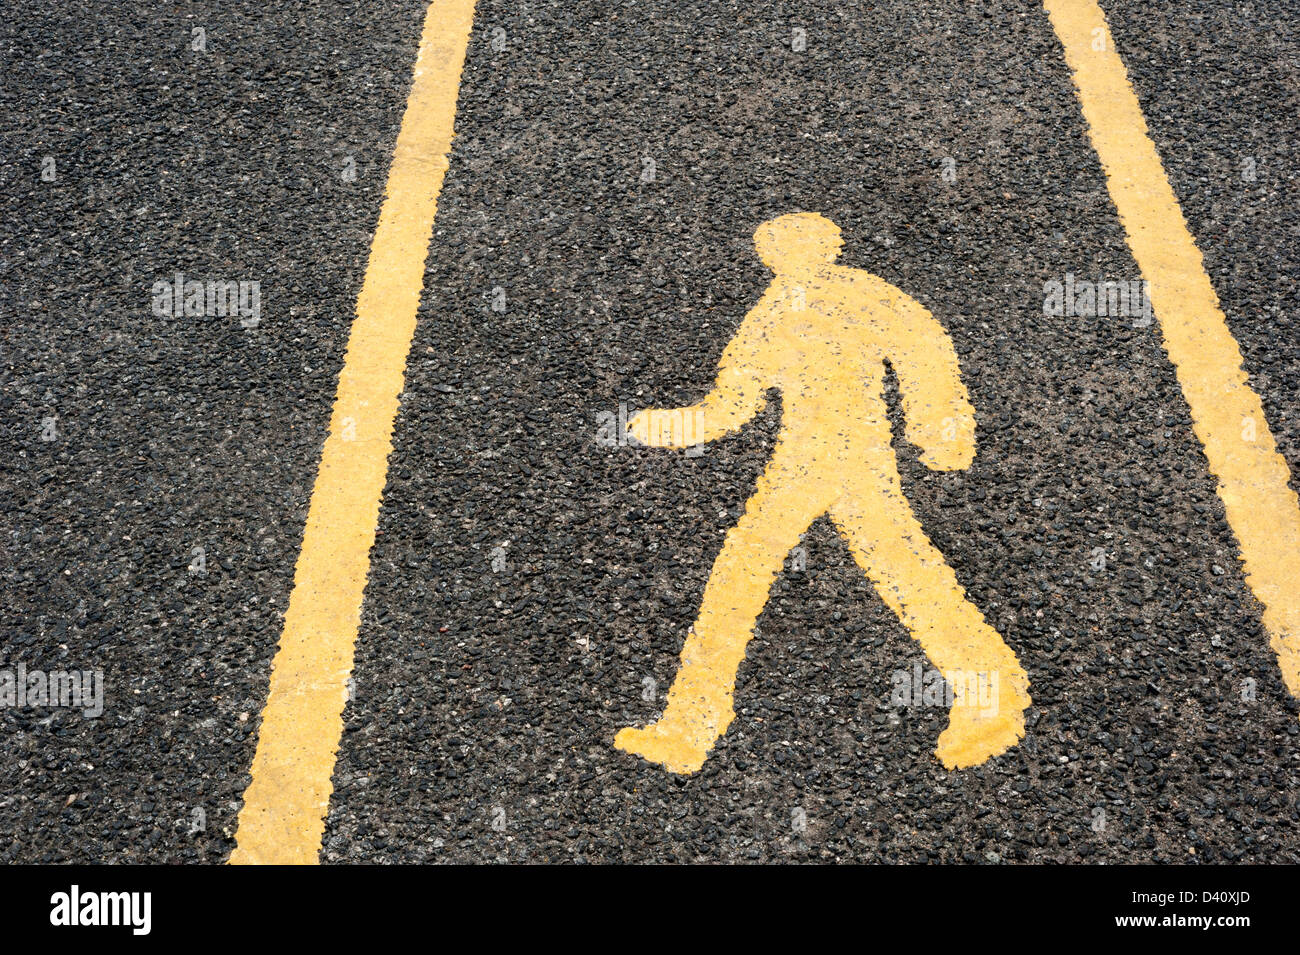 Pedestrian safety walkway sign / man symbol painted on a road surface in a car park, UK - Stock Image